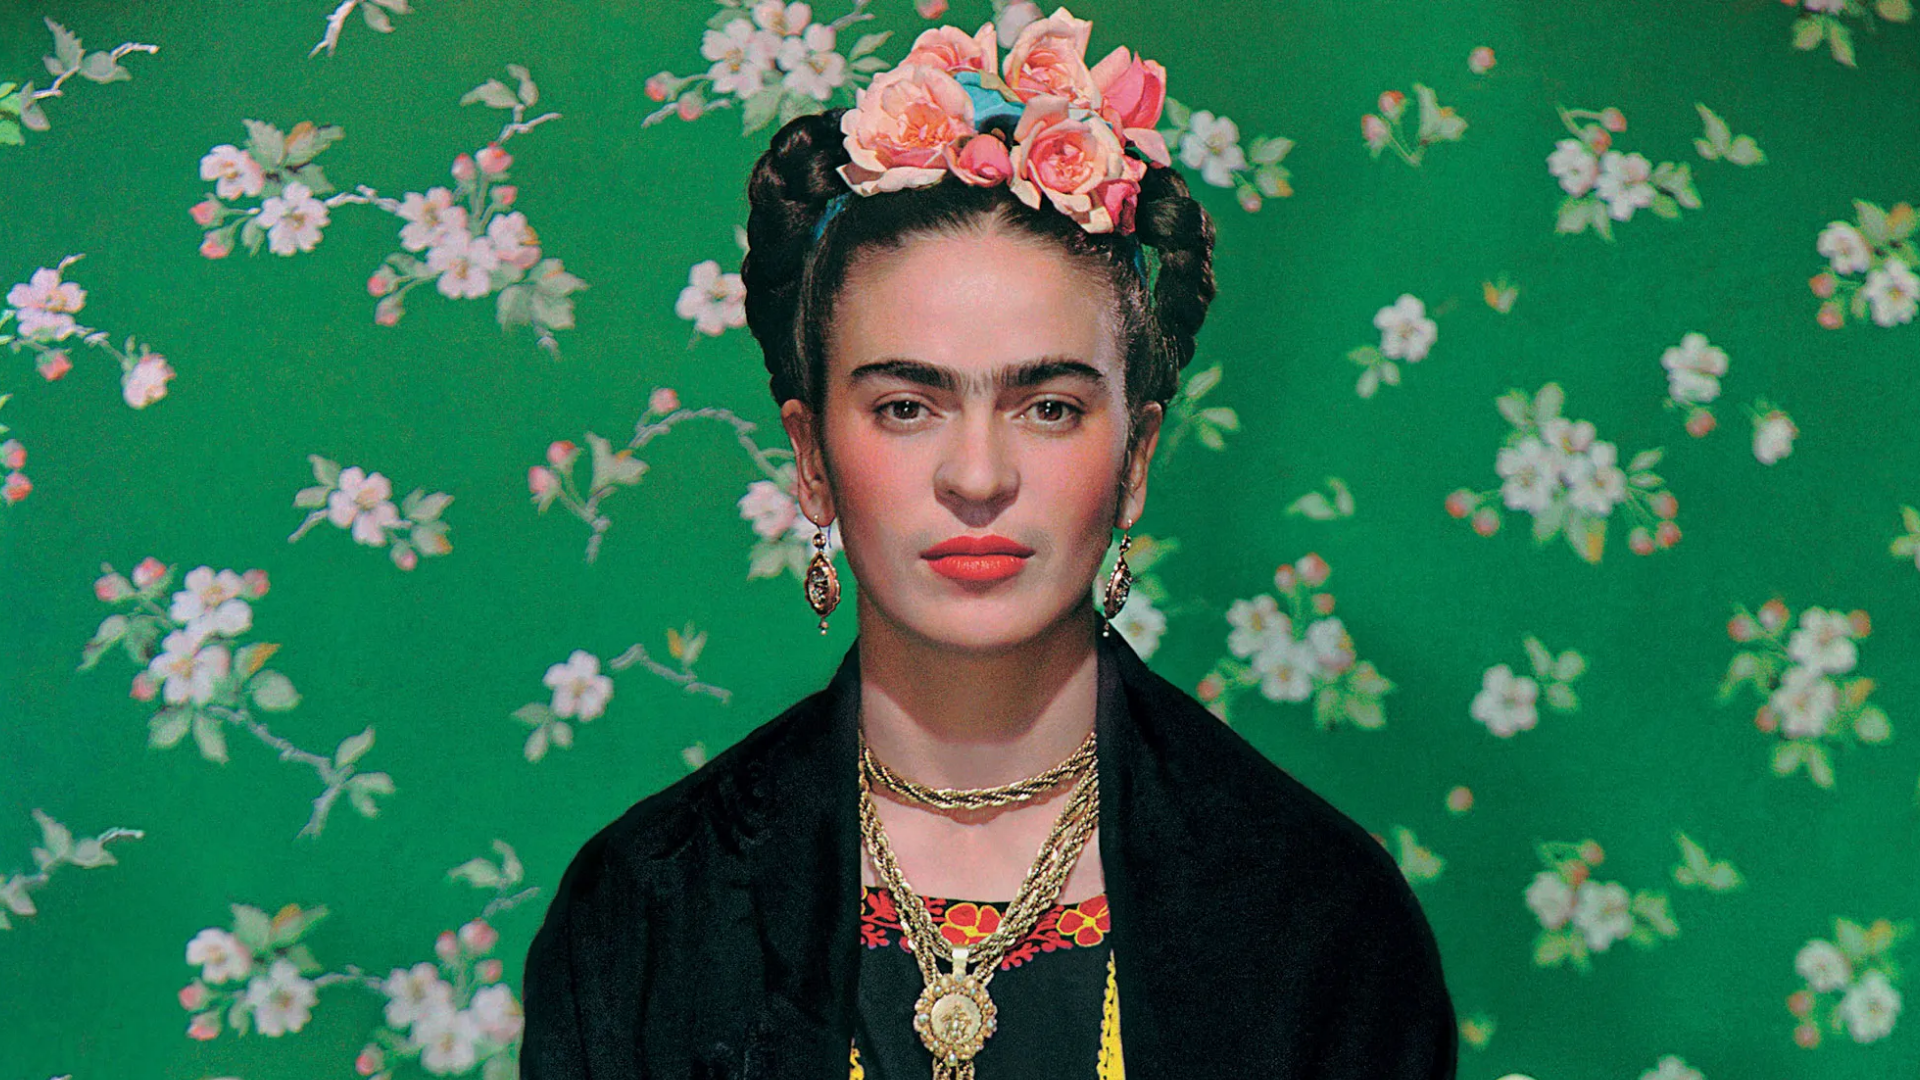 Frida Kahlo wearing luscious red lipstick, flowers in her hair, gold necklaces and long earrings, against a floral green background.